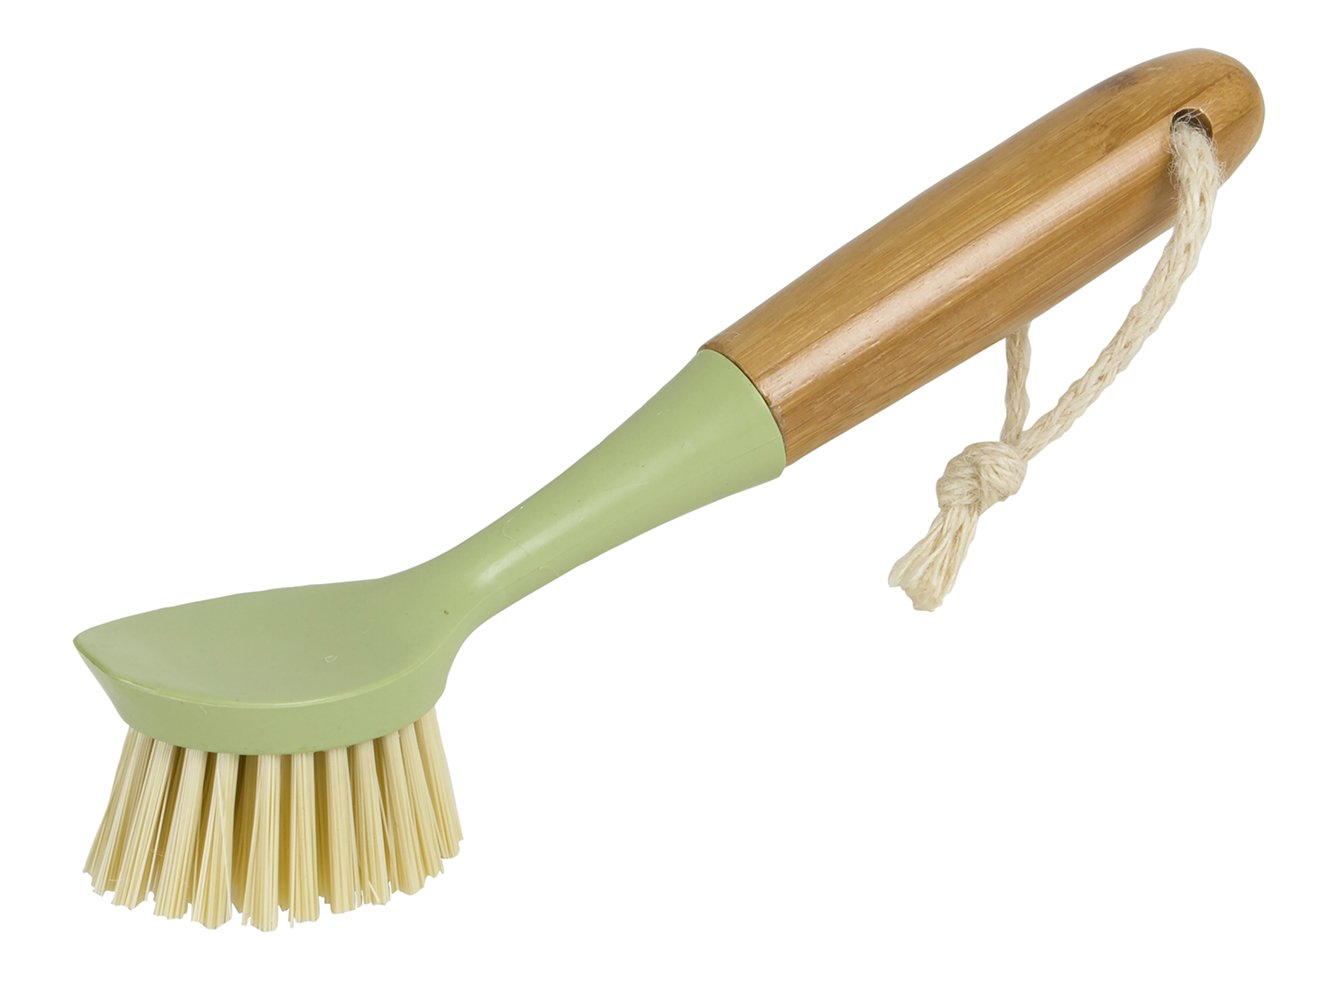 Evriholder Long Handle Brush Dish Scrubber with Built-in Food Scraper, Made of Sustainable Bamboo and Recycled Plastic